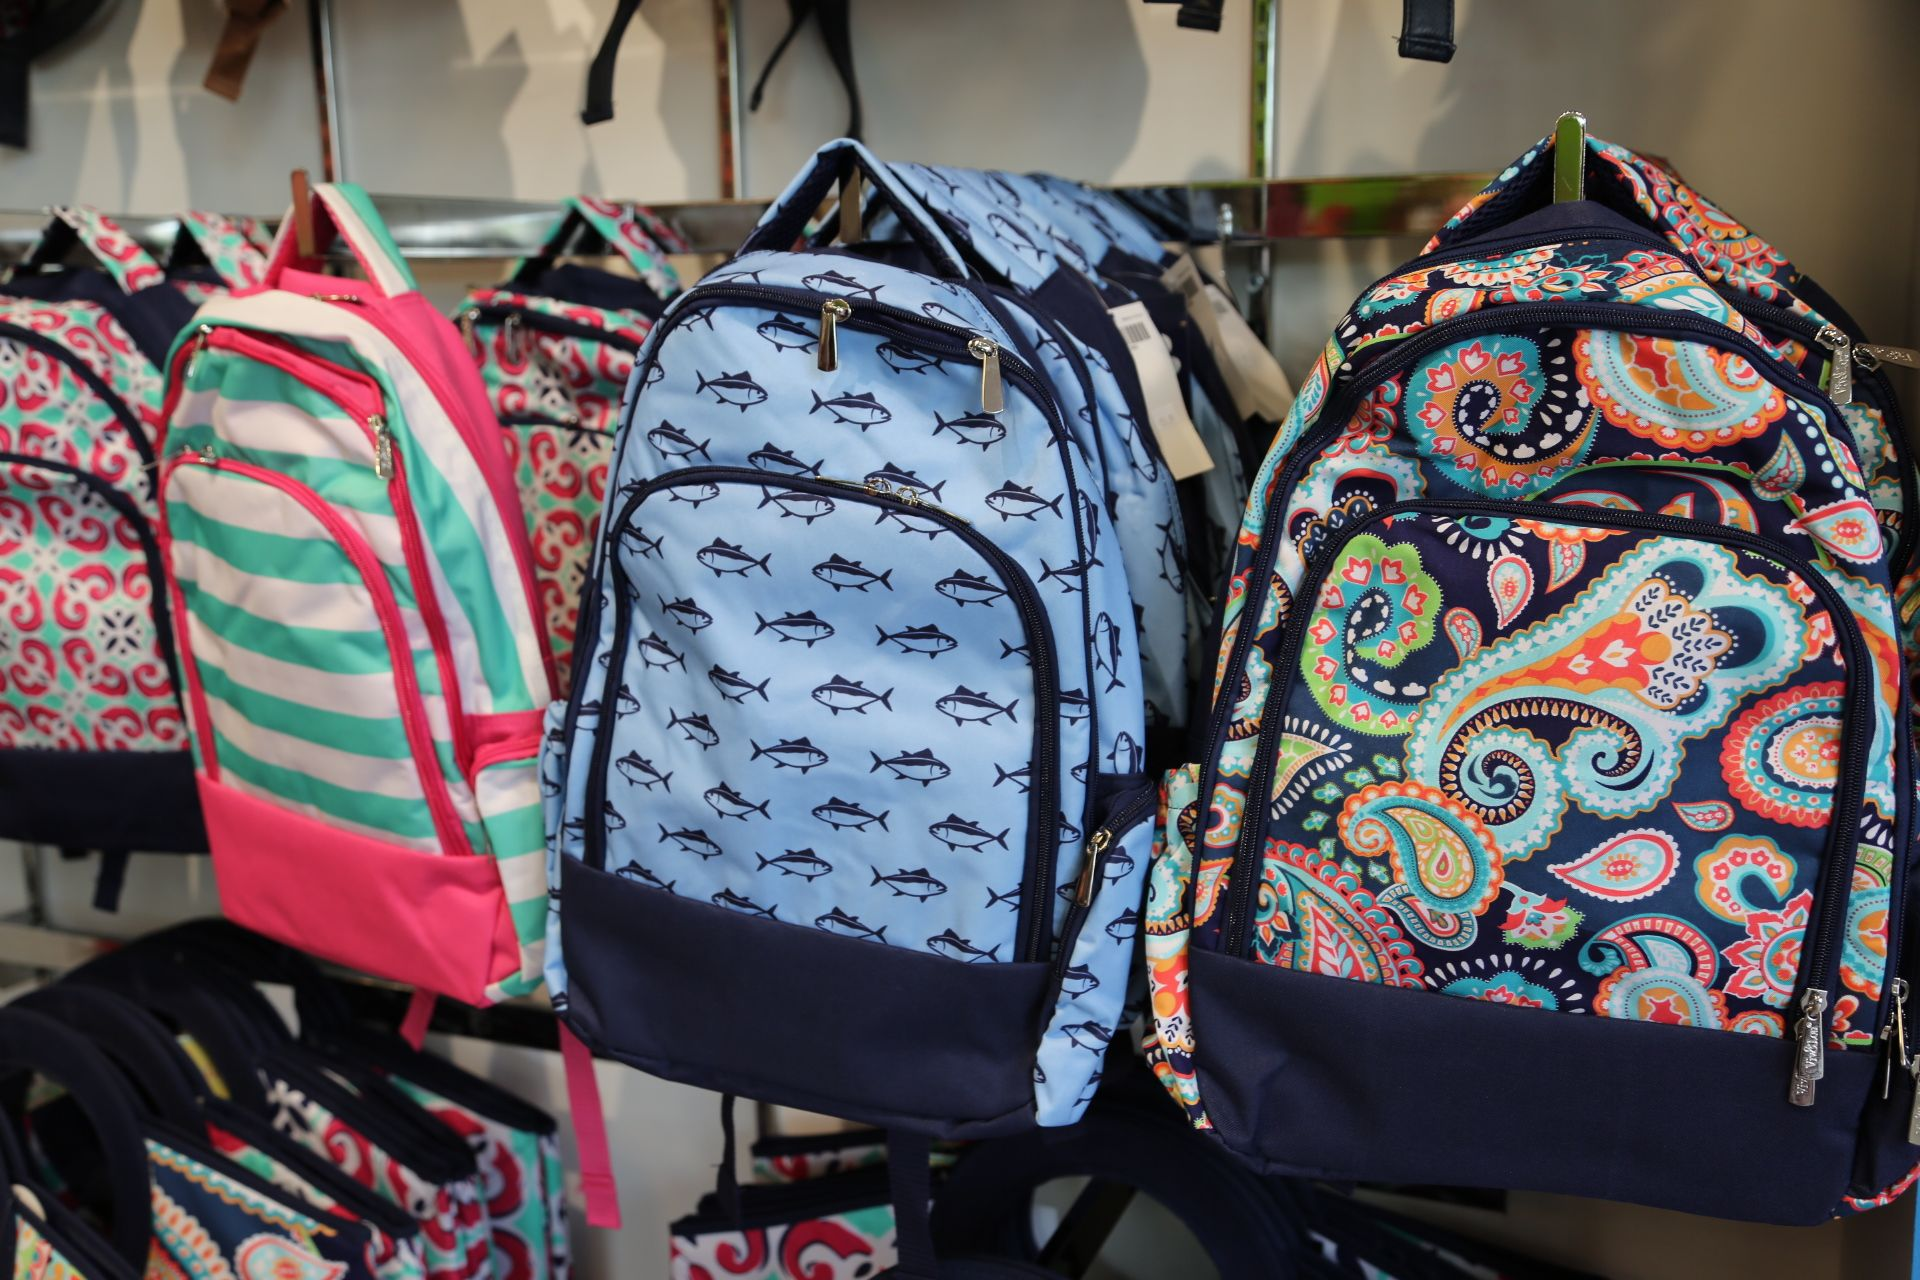 Monogram Backpacks at Monogram Boutique at The Island in Pigeon ...